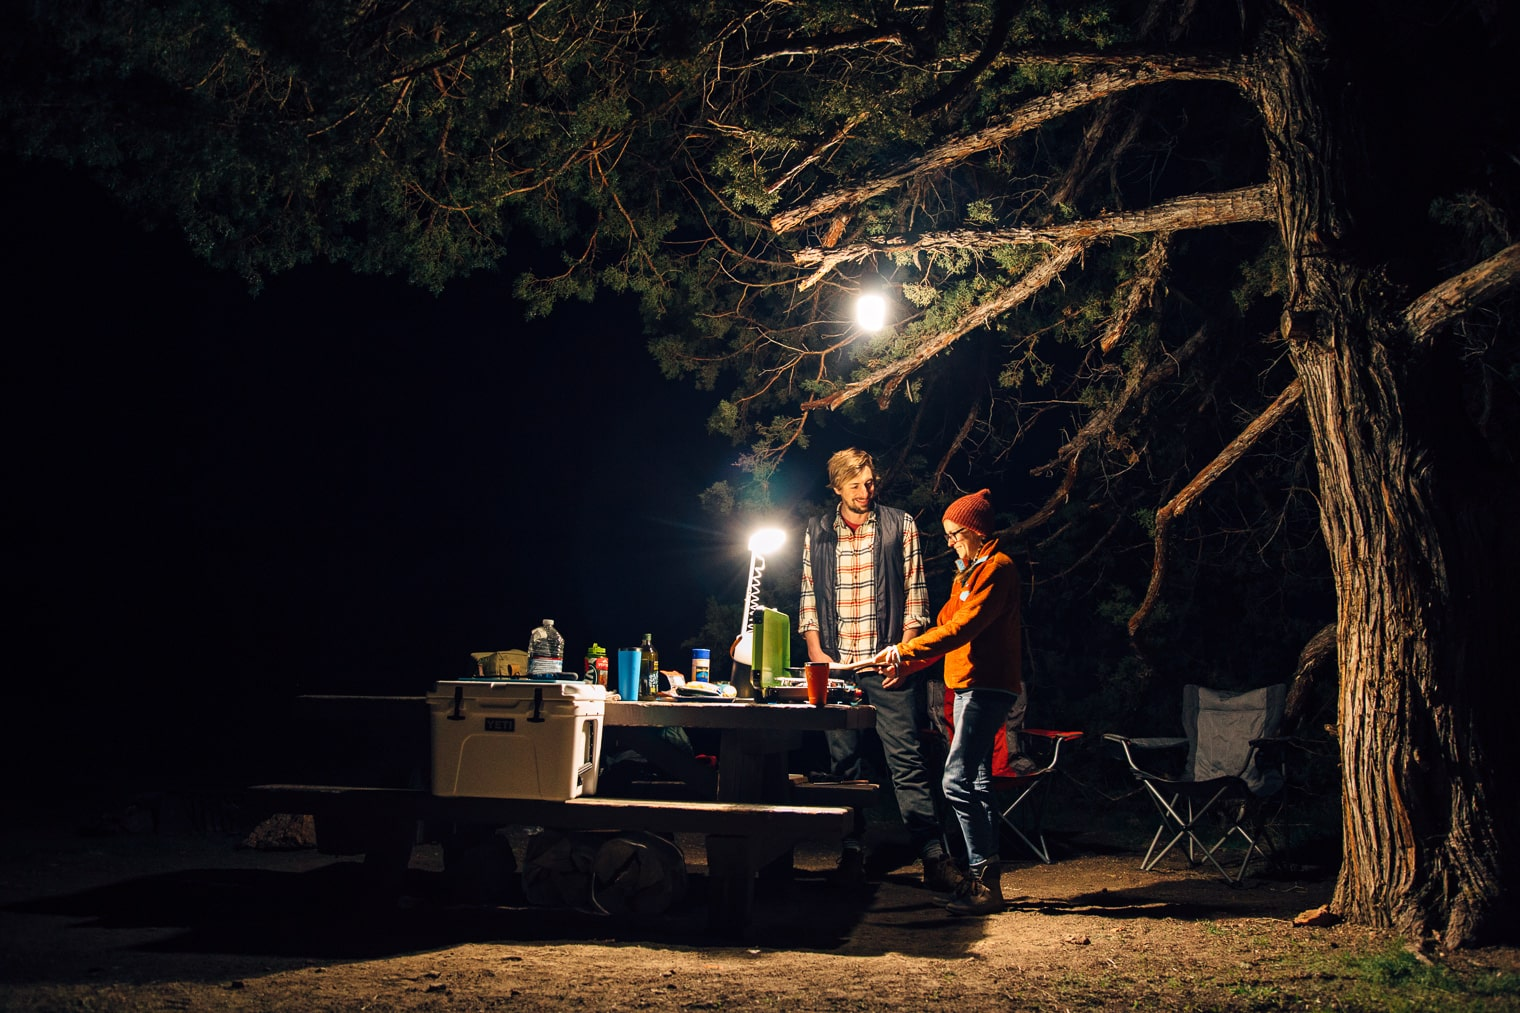 Light up your campsite with a UCO Lantern.